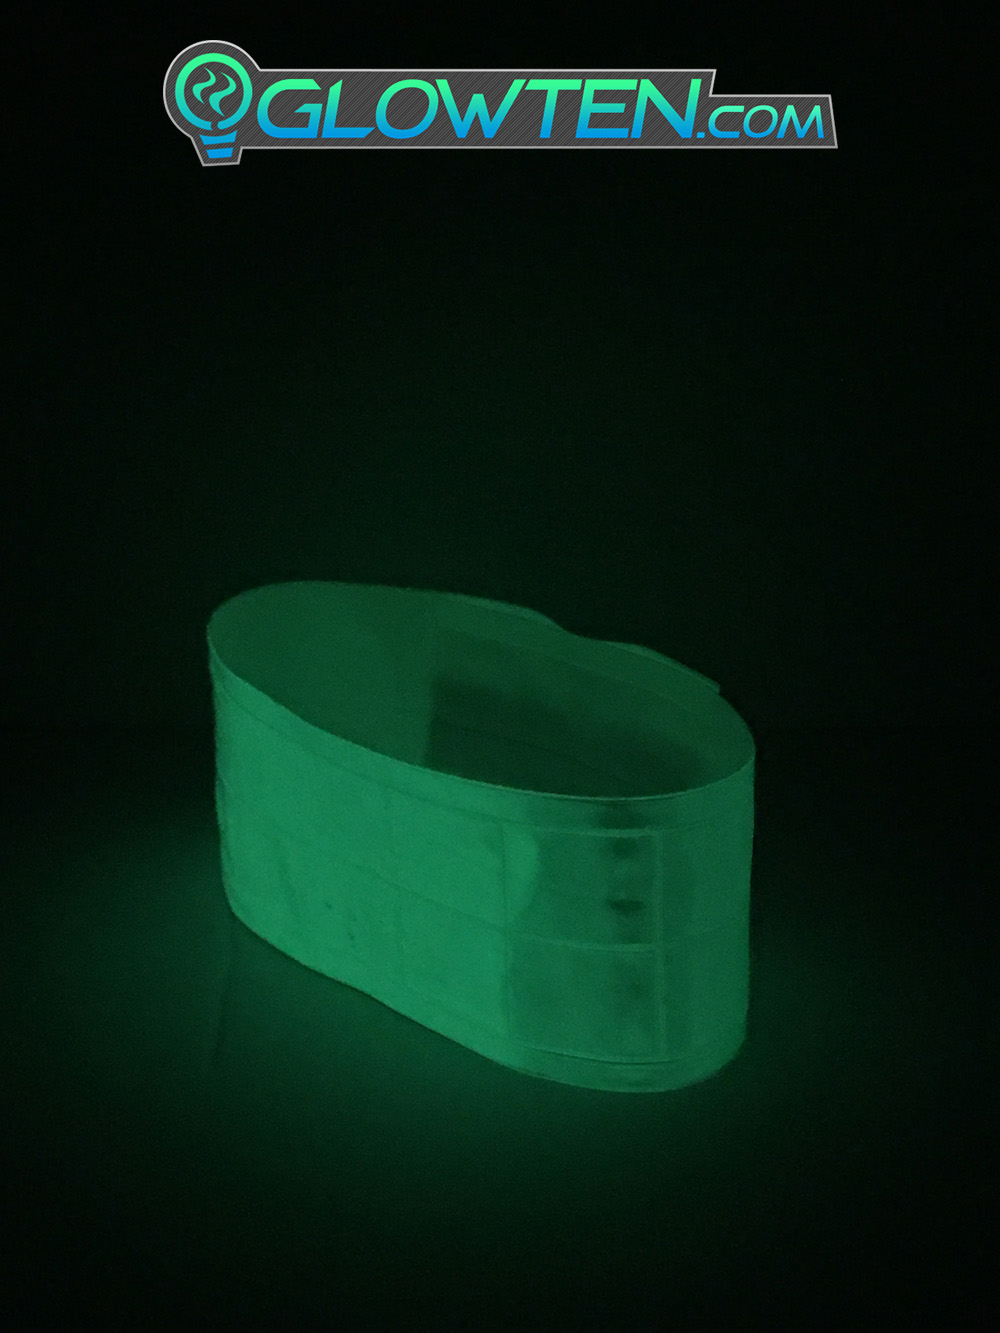 GLOWTEN.com - How long does glow in the dark tape glow Reflective Luminous Band See Better At Night Safety High-Visibility Reflector Band Tape Armband For Reflective Clothing picture photo cap preview pic image search 2